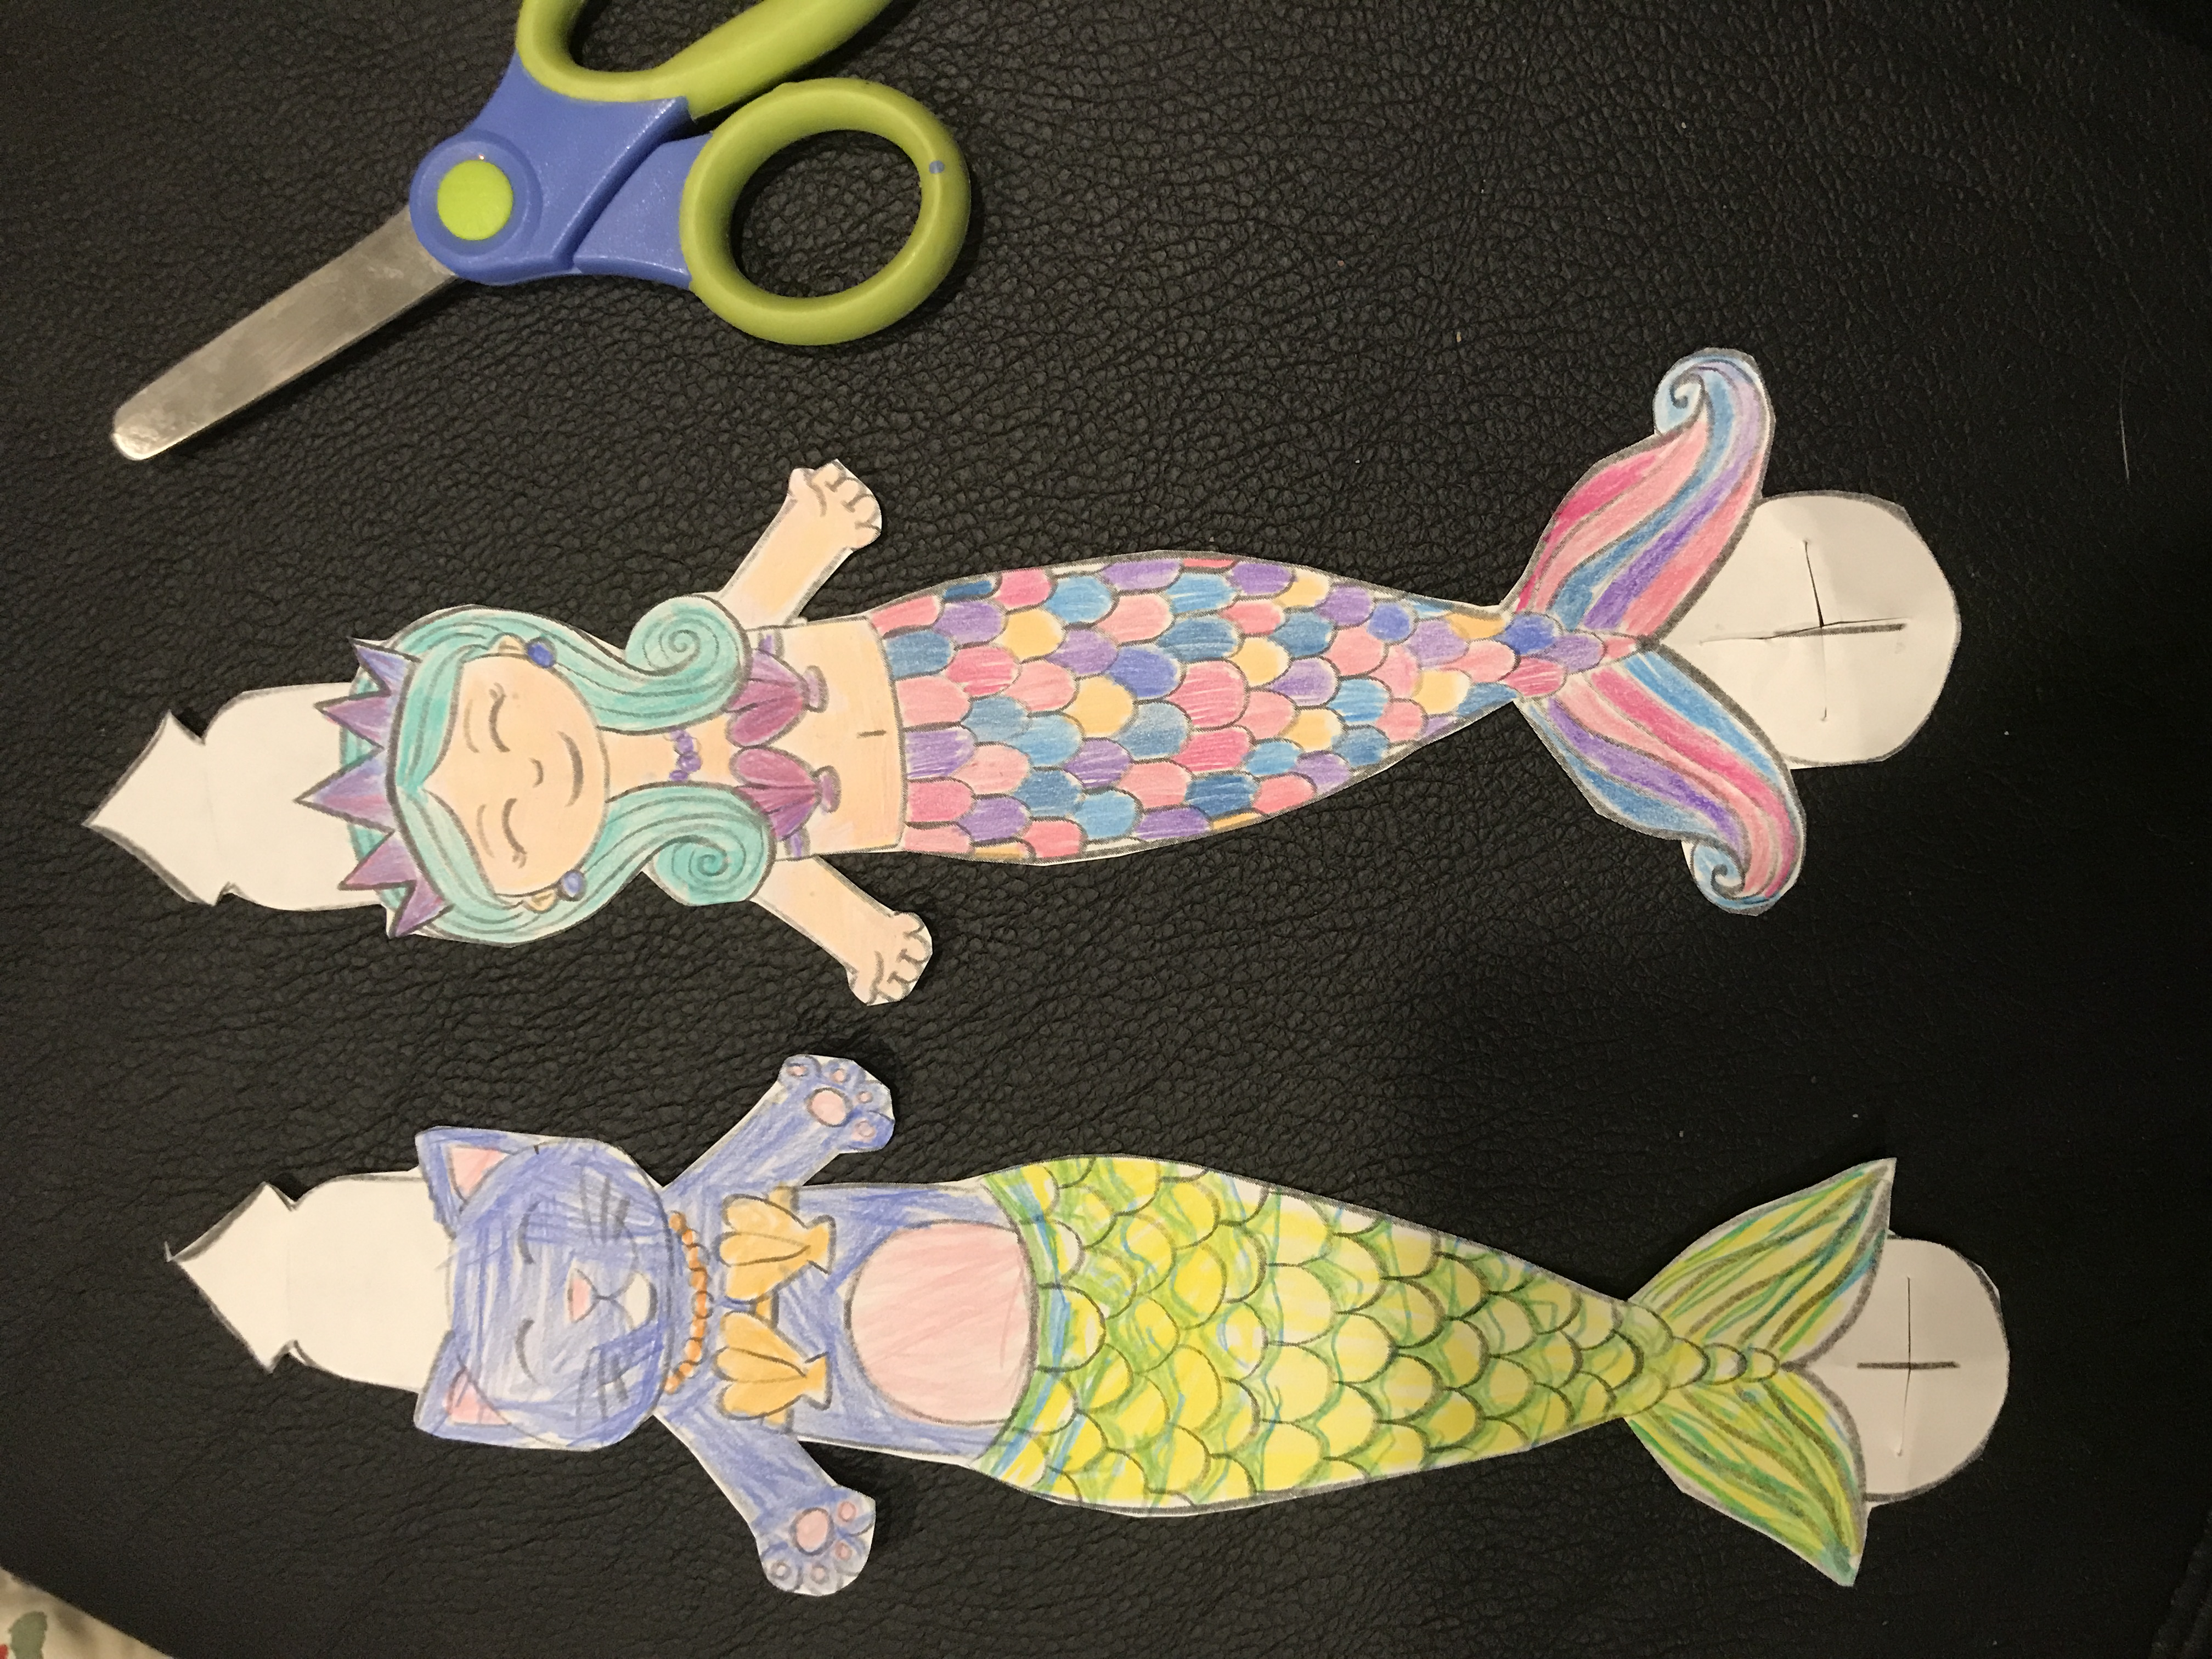 Mermaid and MerKitten bracelet craft